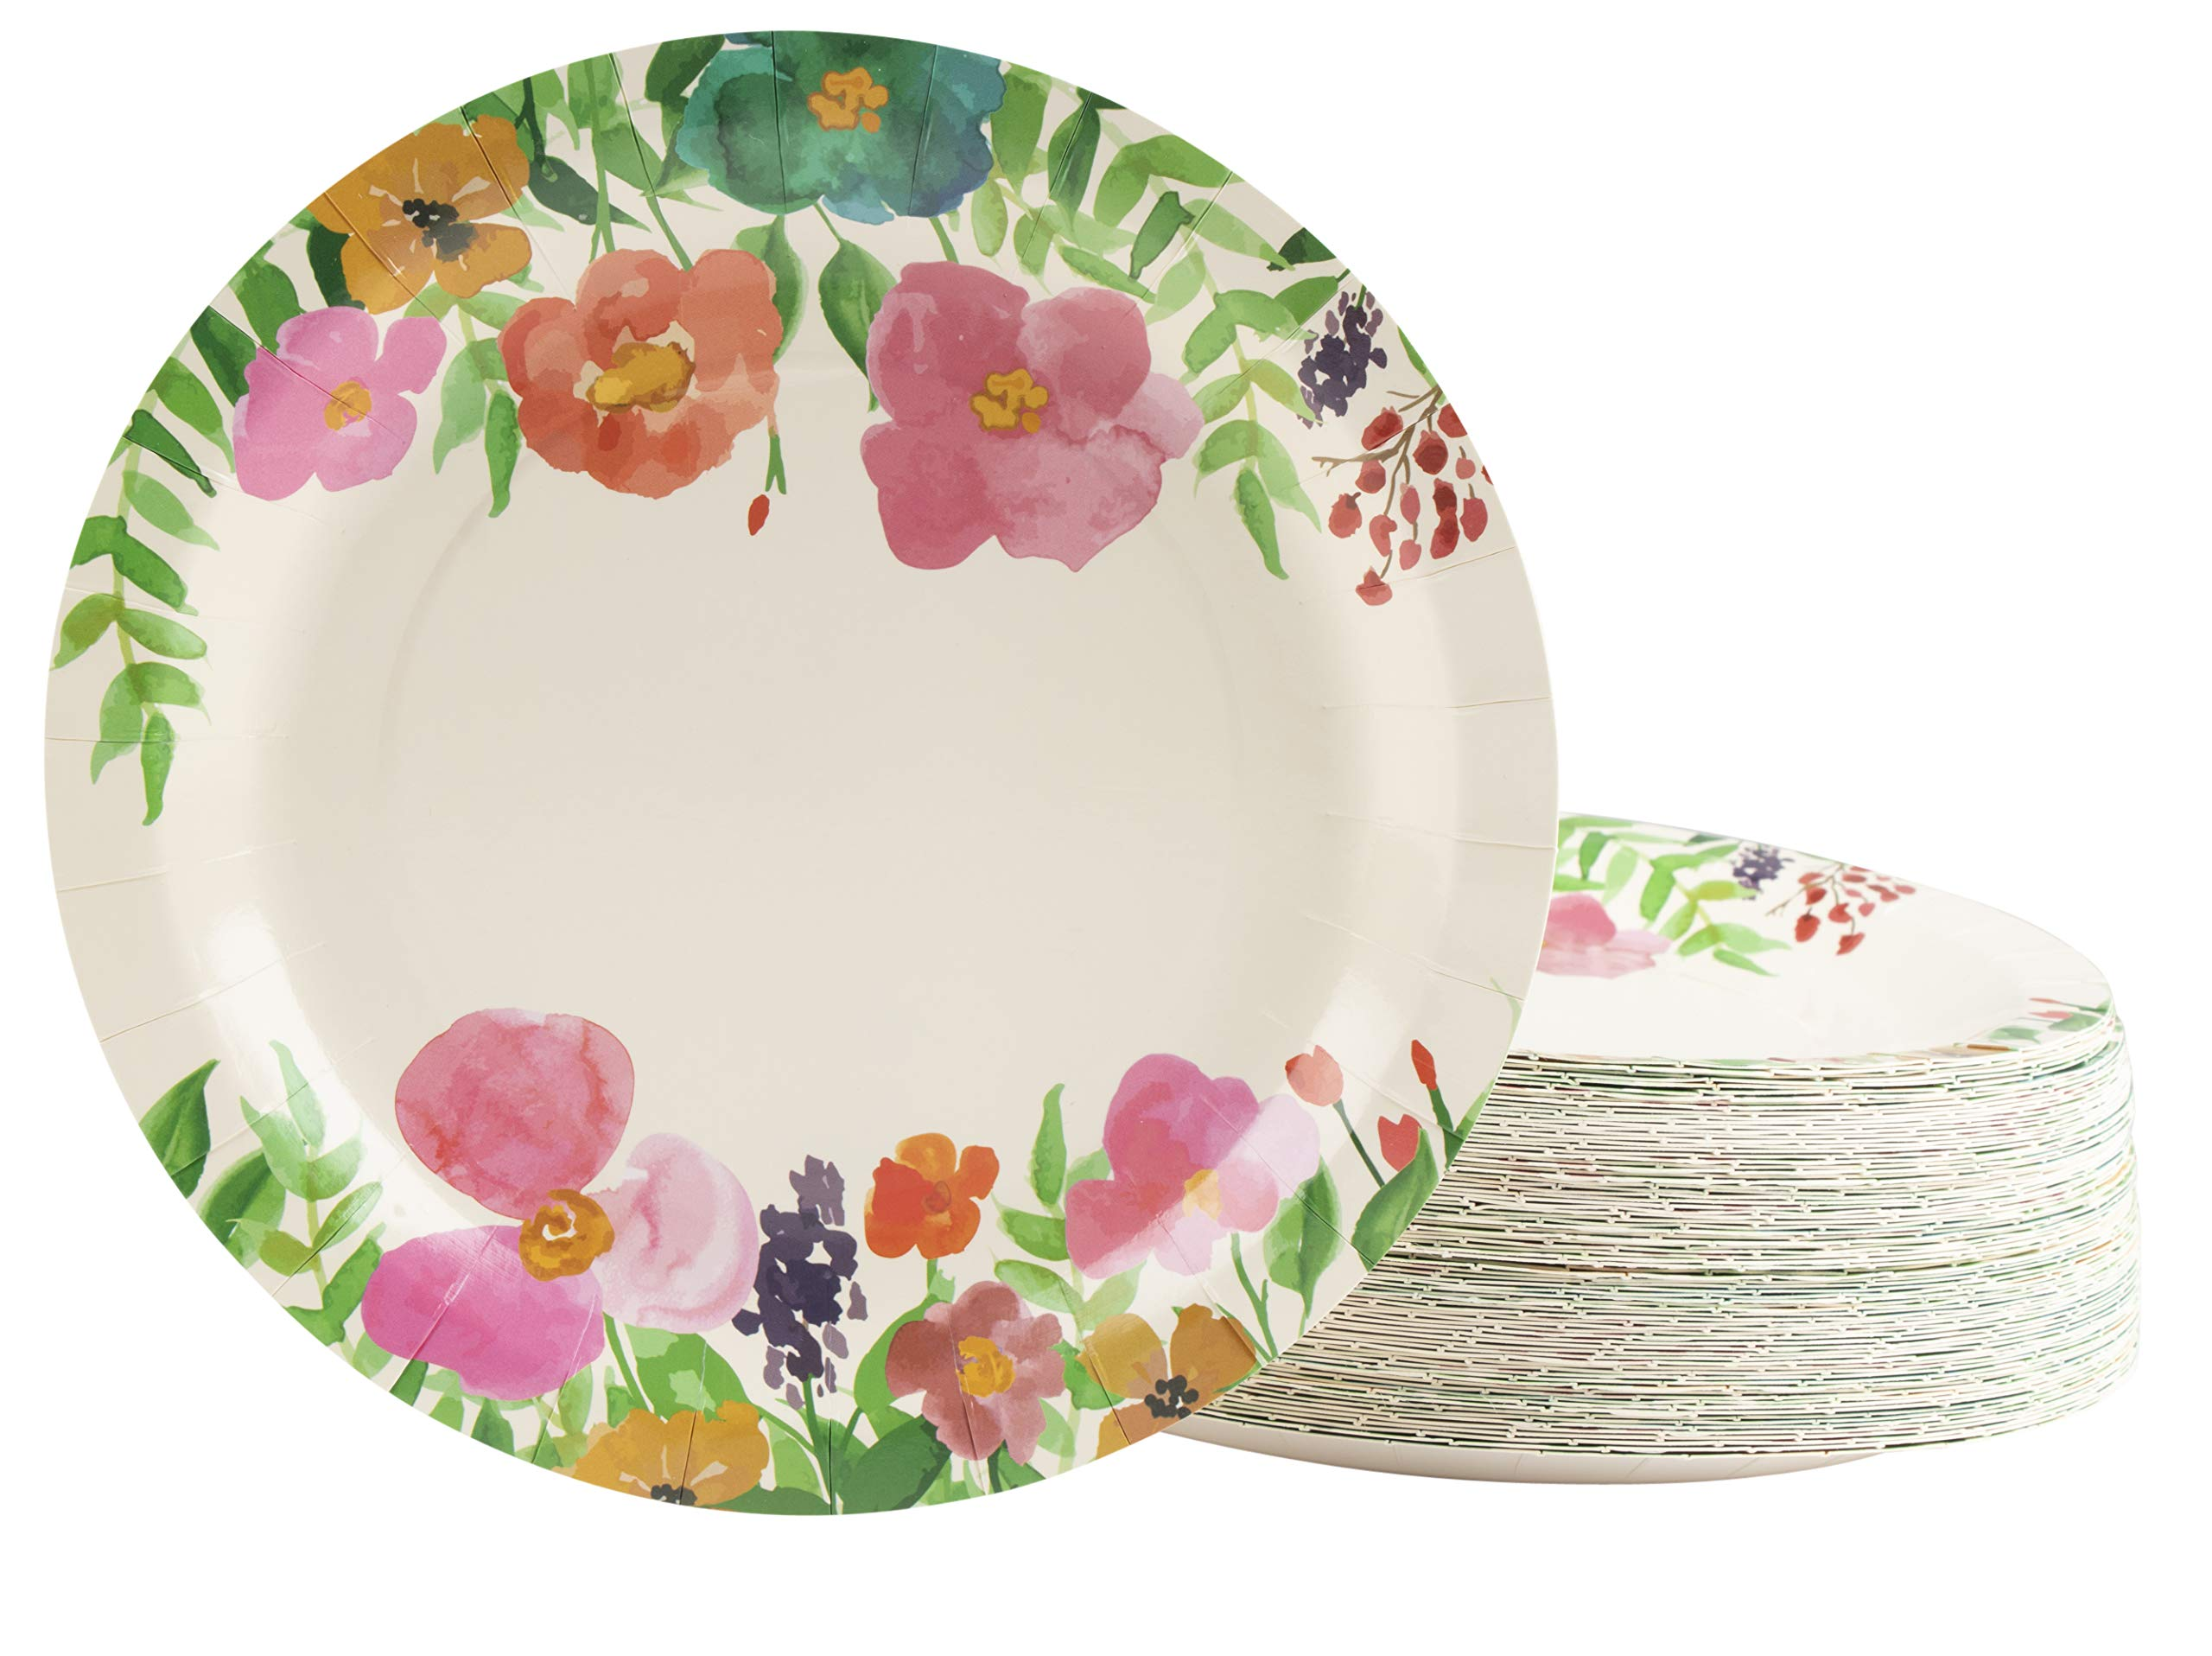 Floral Paper Plates - 80-Pack Disposable 9-Inch Floral Plates, Tea Party, Weddings, Bridal Shower Party Supplies, Vintage Watercolor Flowers Print, Round Plates for Appetizer, Lunch, Dessert by Juvale